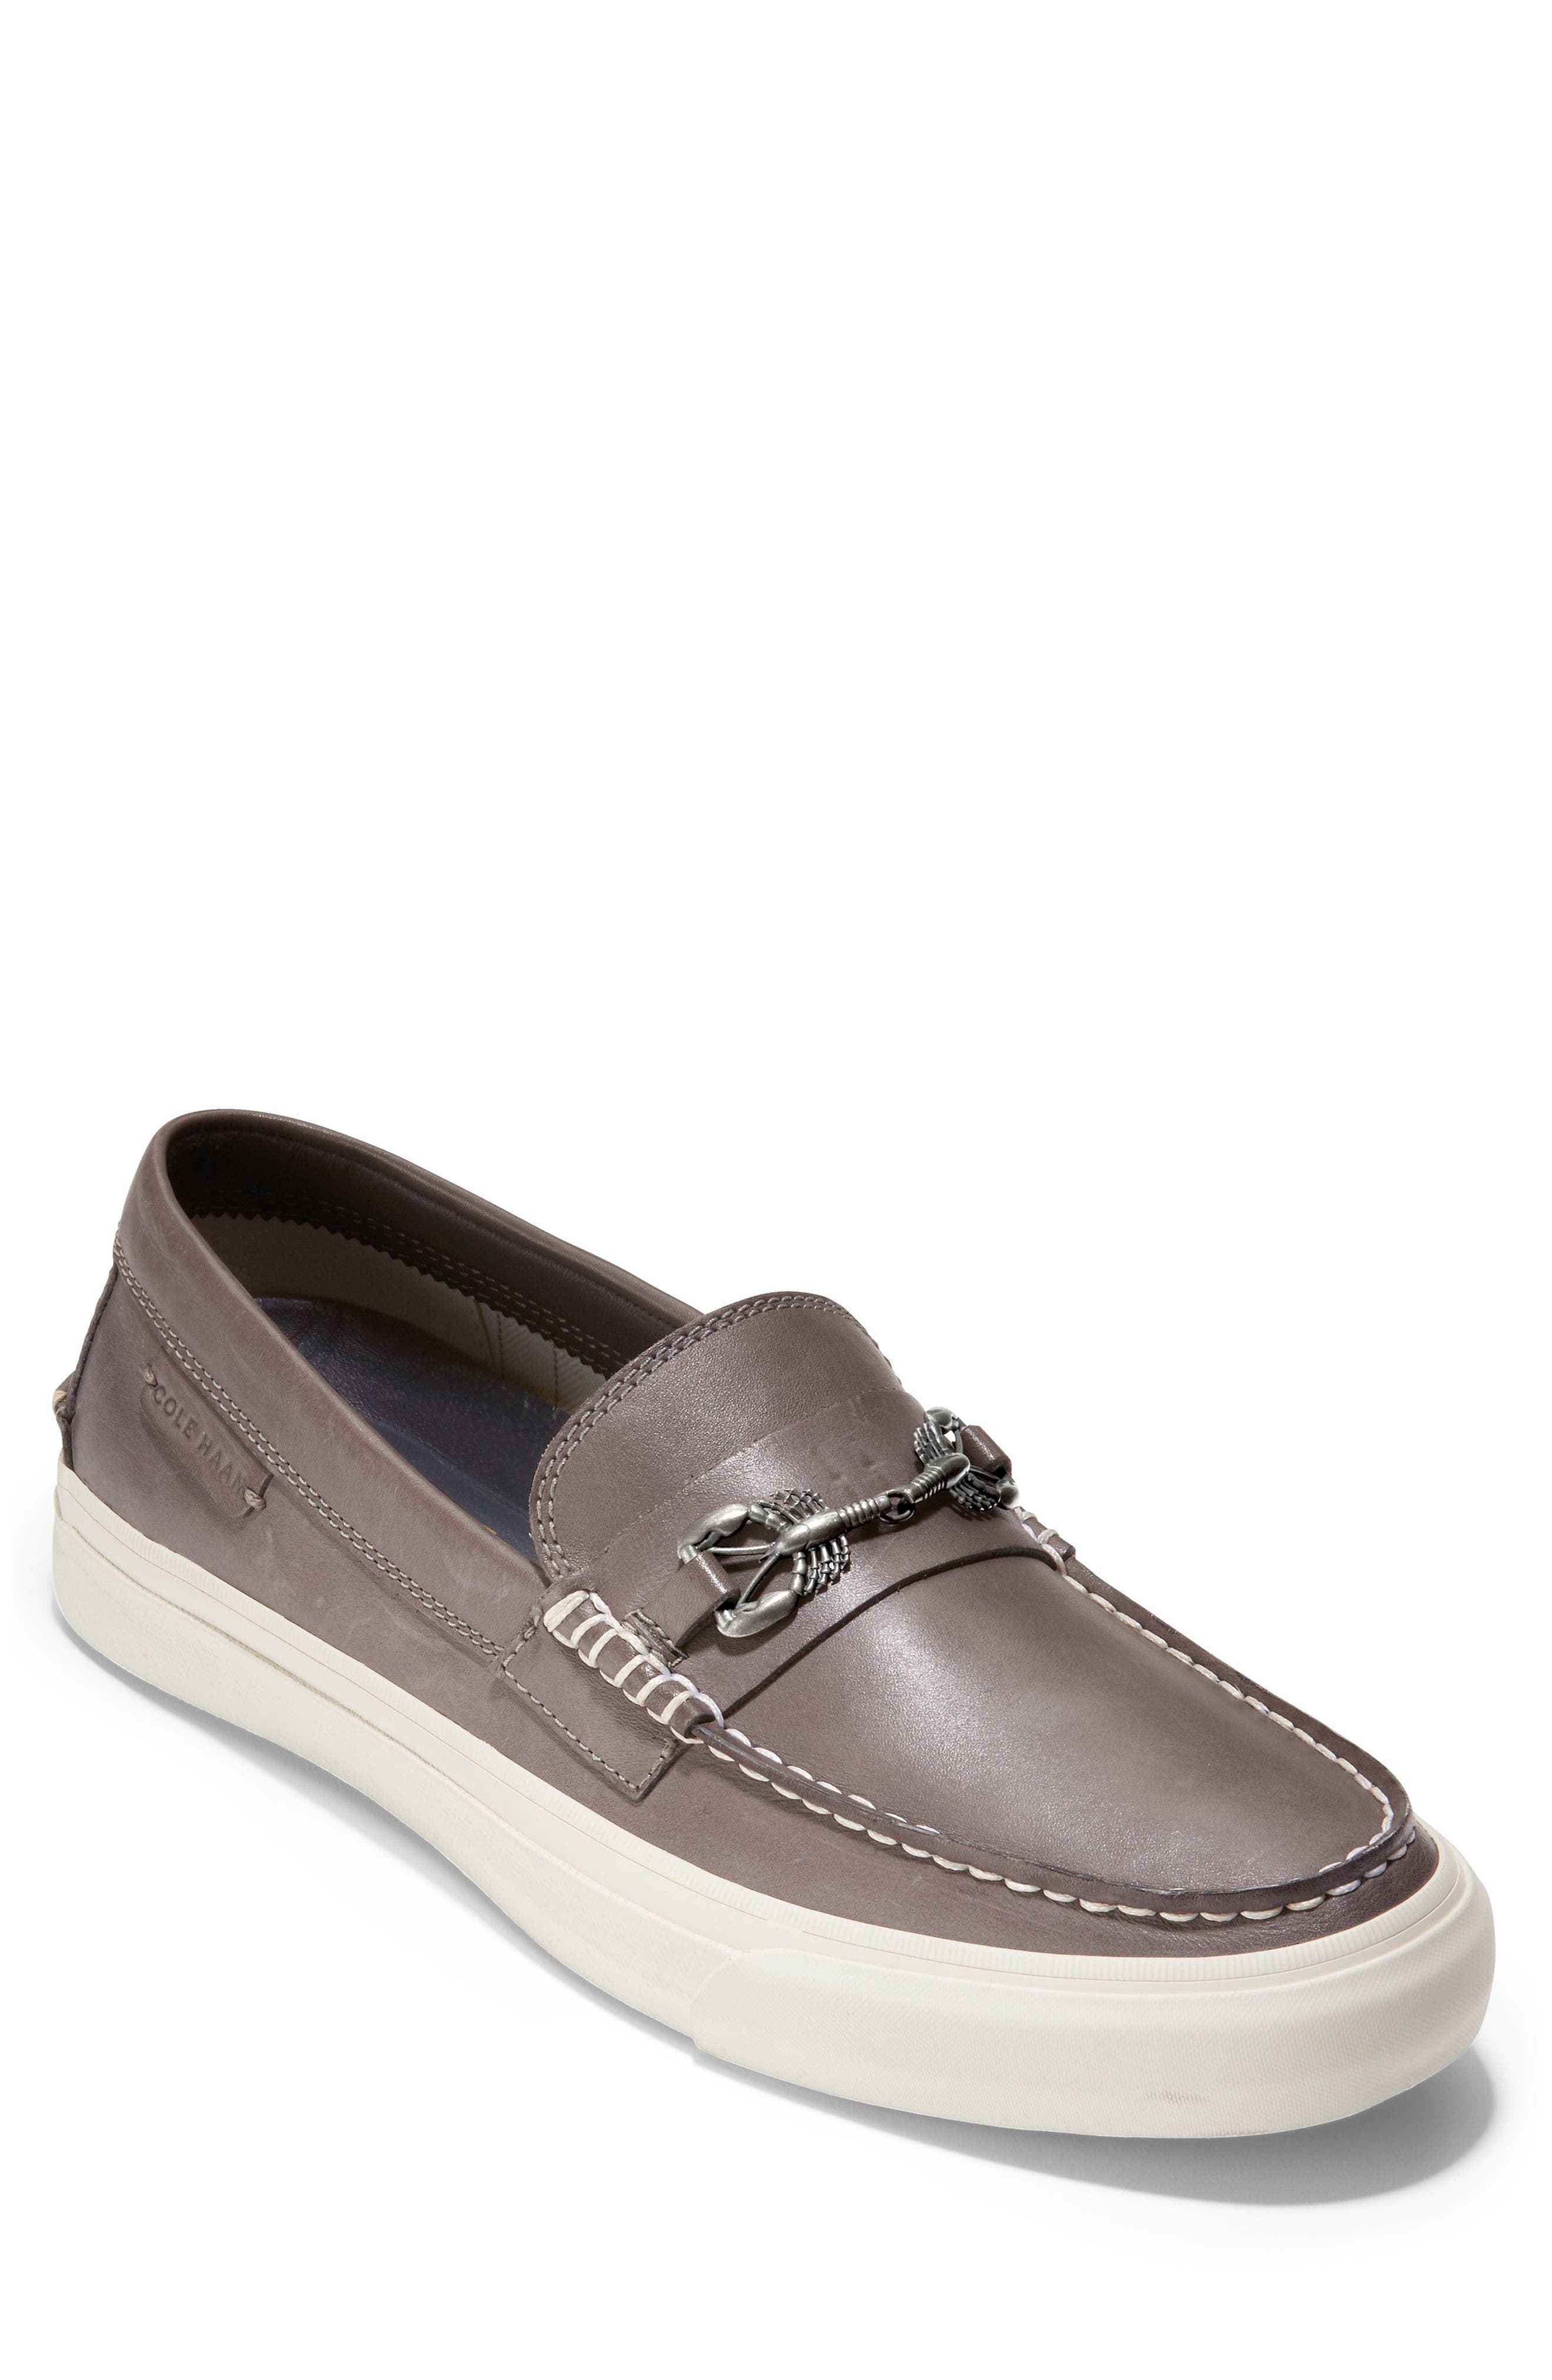 Pinch Weekend Loafer,                             Main thumbnail 1, color,                             Stormcloud Handstain